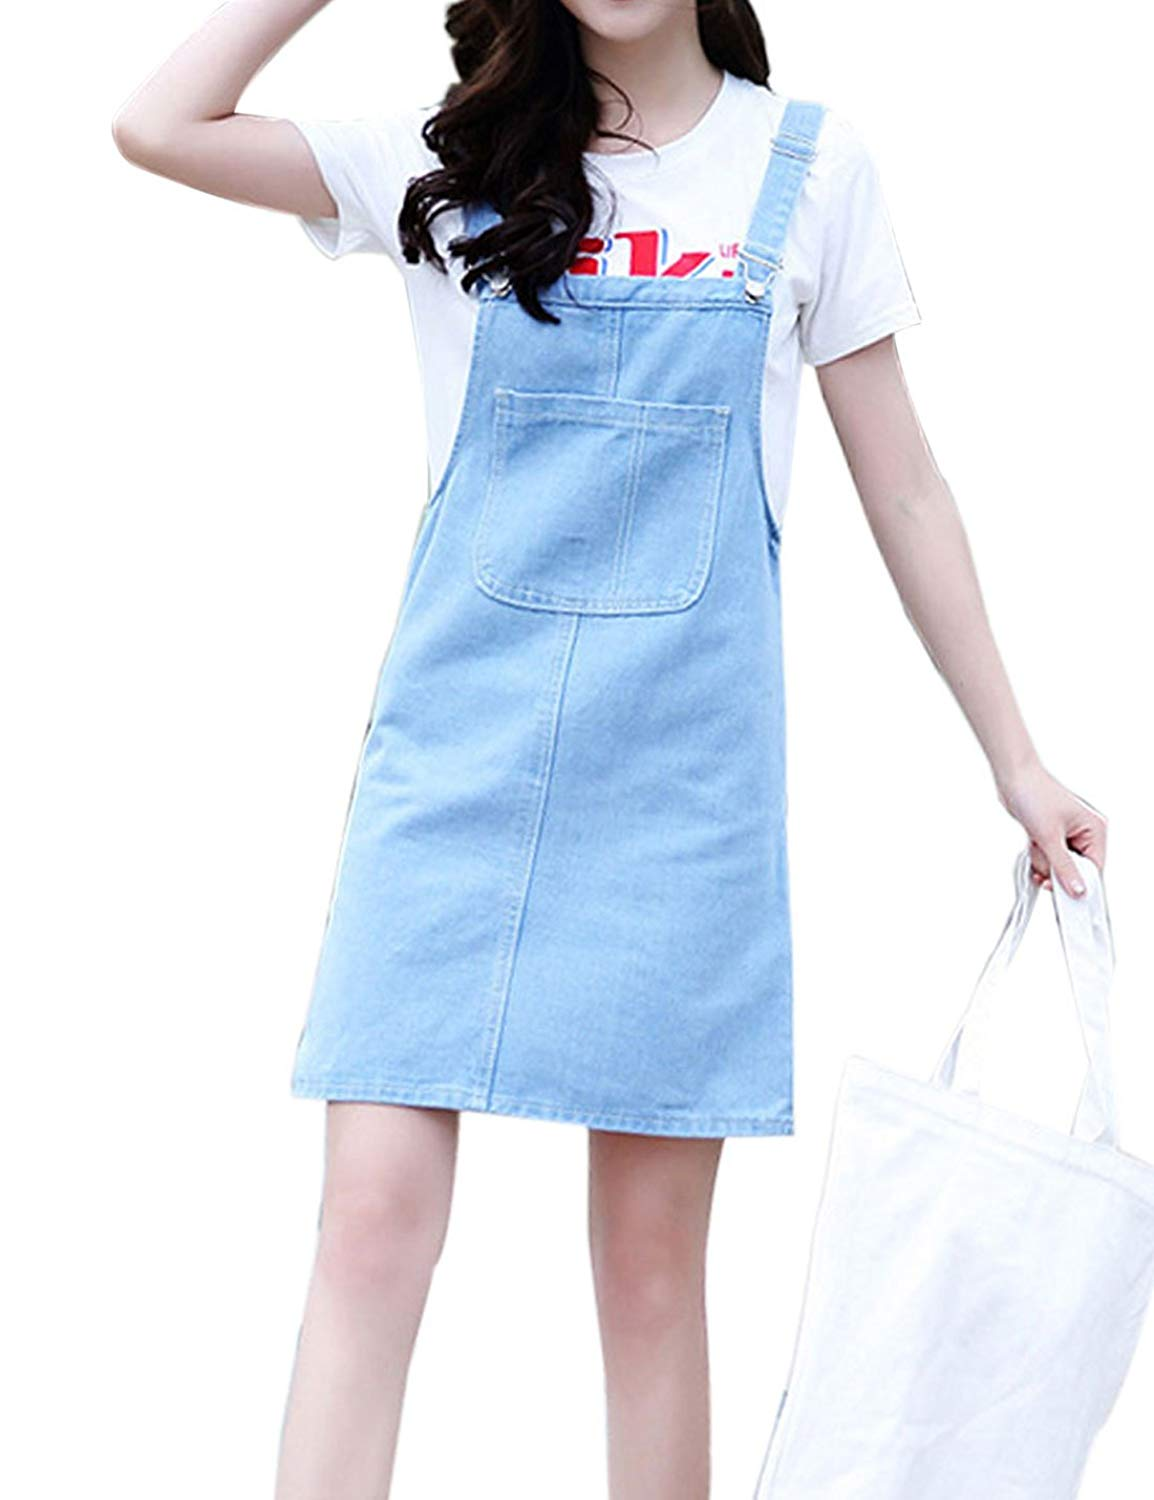 27526fb184c Get Quotations · Yeokou Women s Casual A-line Mid Long Denim Jean Suspander Overall  Dress Skirt